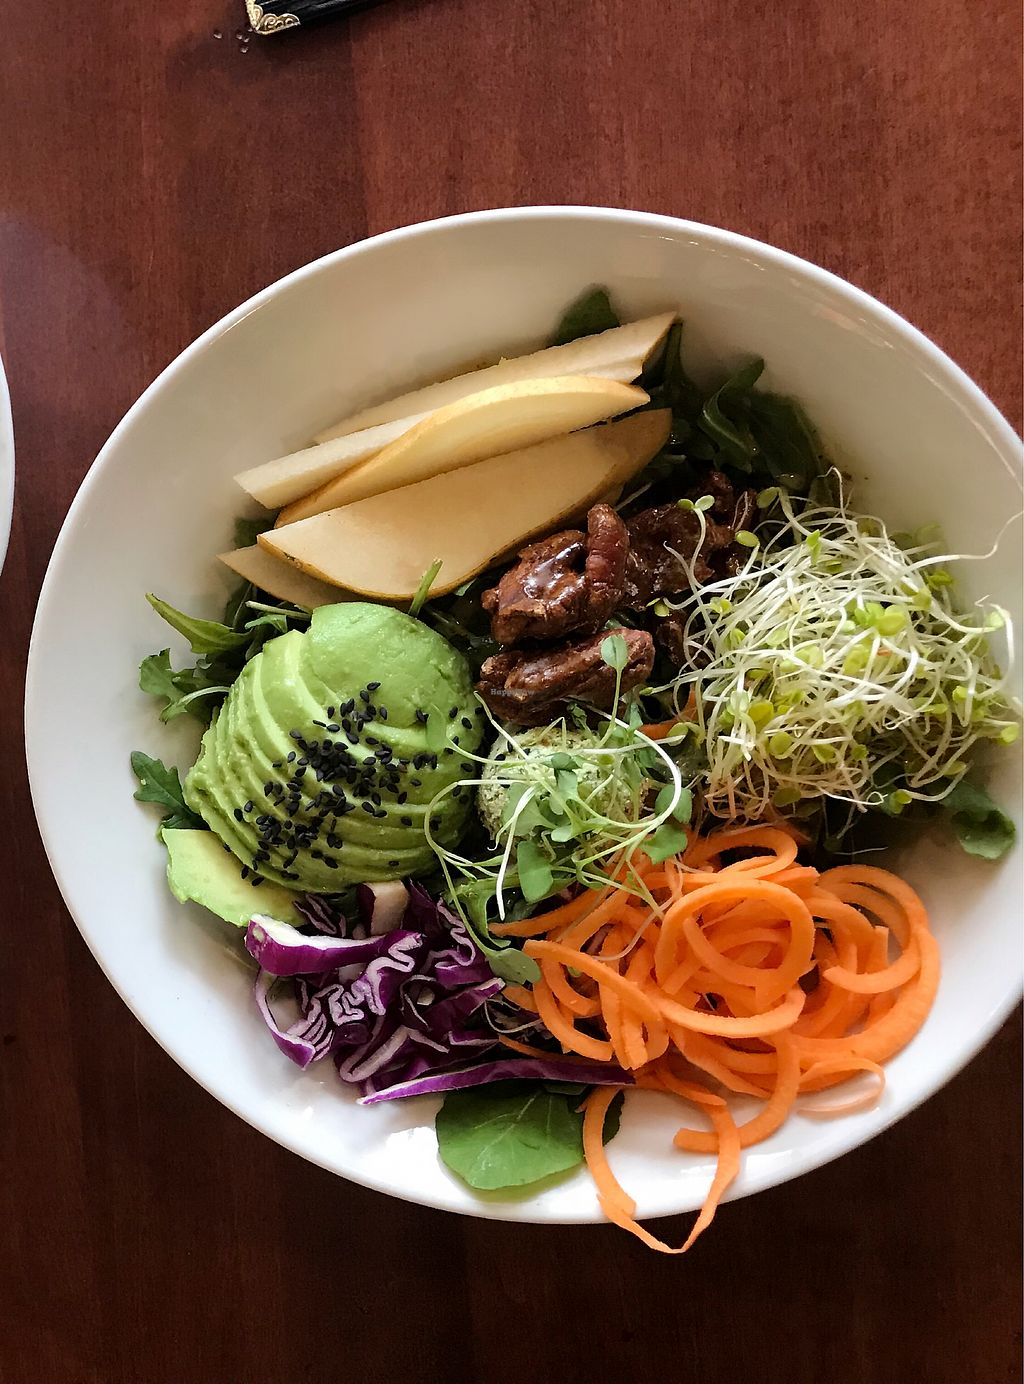 """Photo of Living Kitchen - South End  by <a href=""""/members/profile/Dimanta"""">Dimanta</a> <br/>Harvest Salad <br/> March 5, 2018  - <a href='/contact/abuse/image/22984/366944'>Report</a>"""